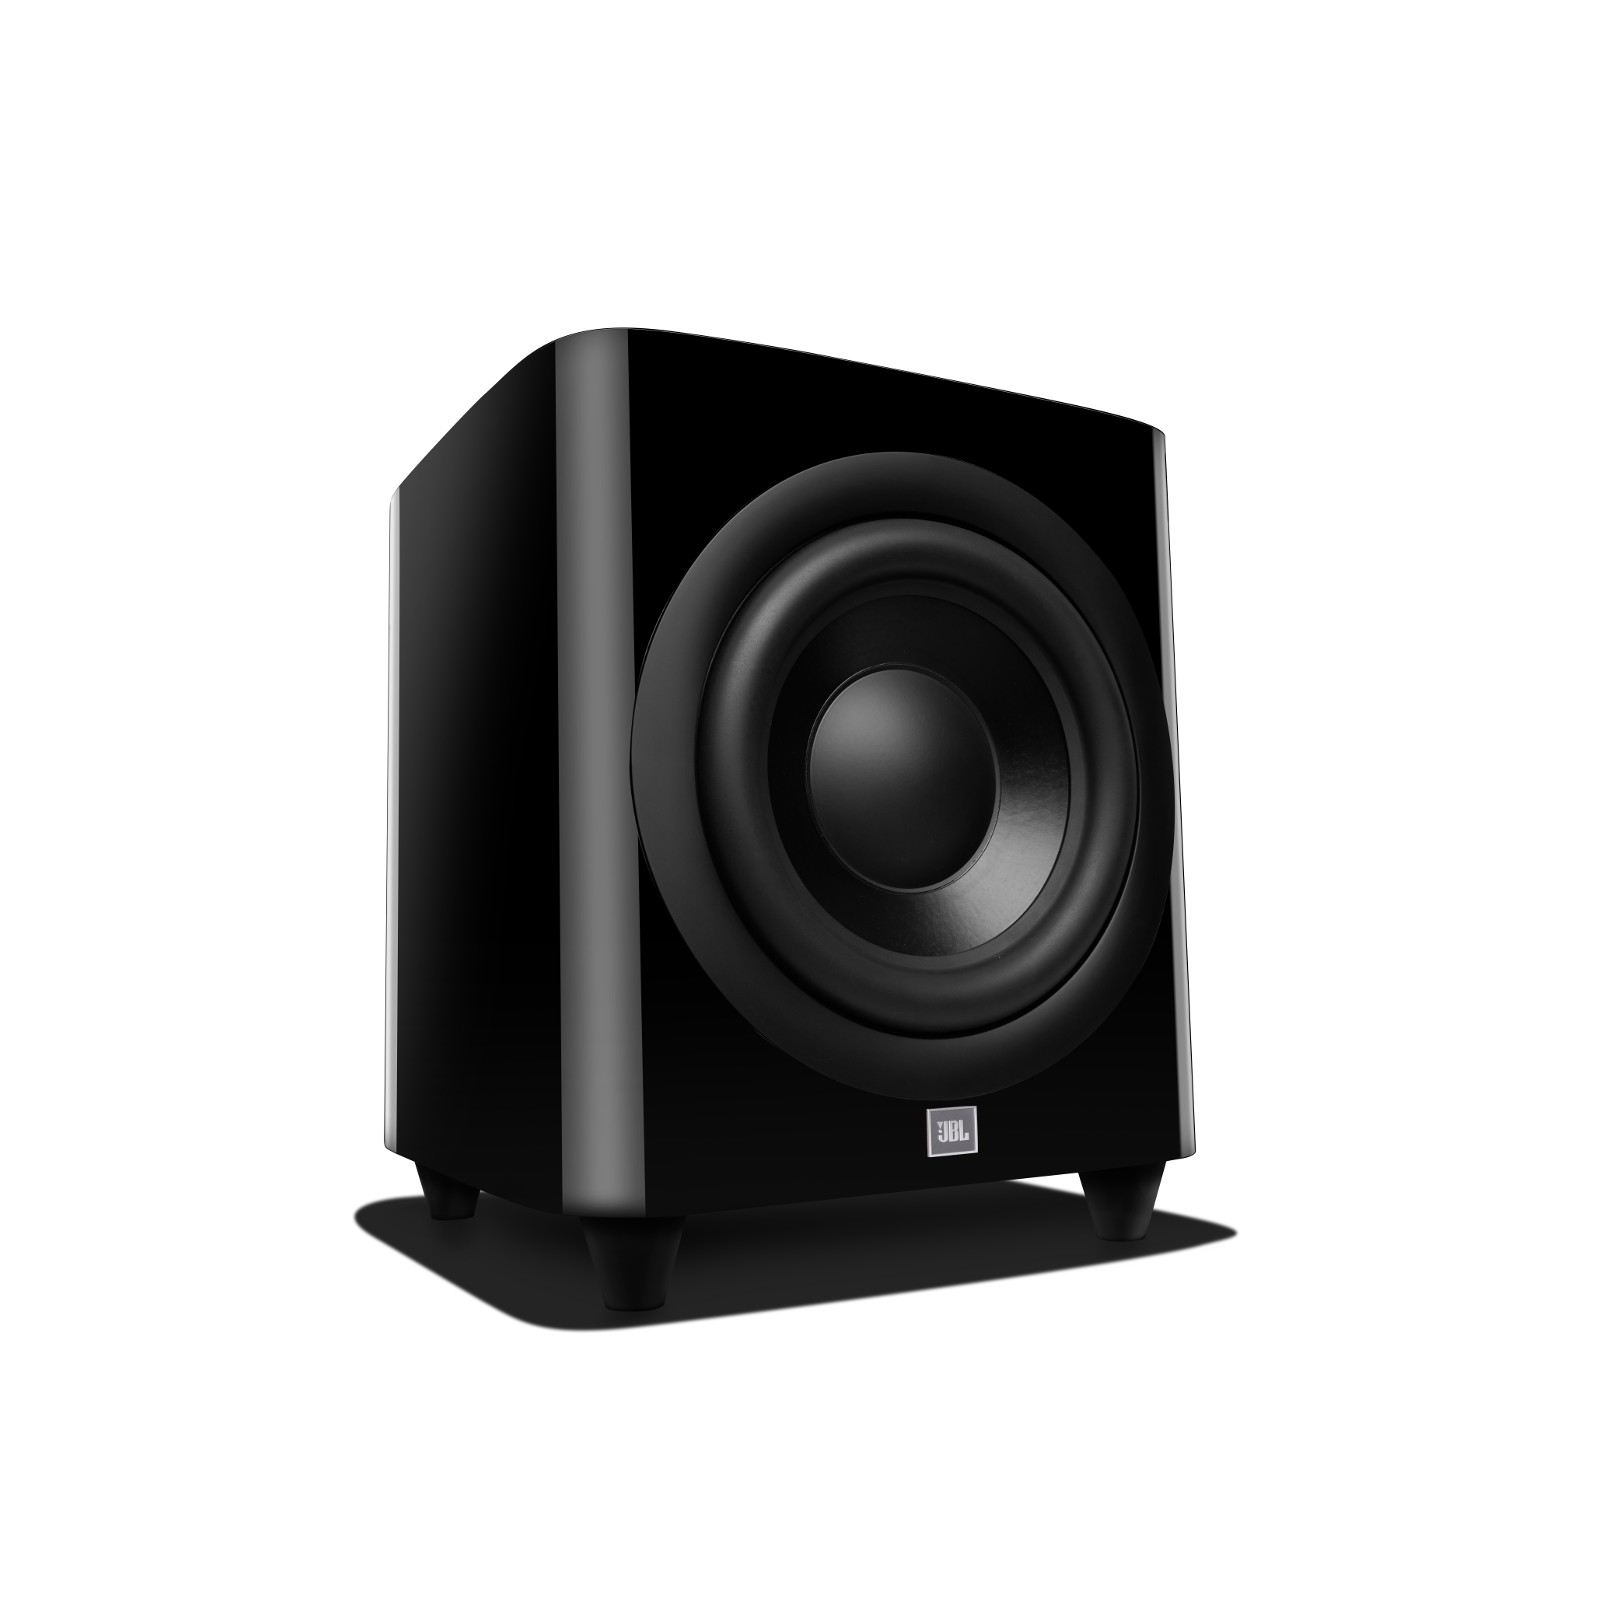 HDI-1200P - Black Gloss - 12-inch (300mm) 1,000W Powered Subwoofer - Front